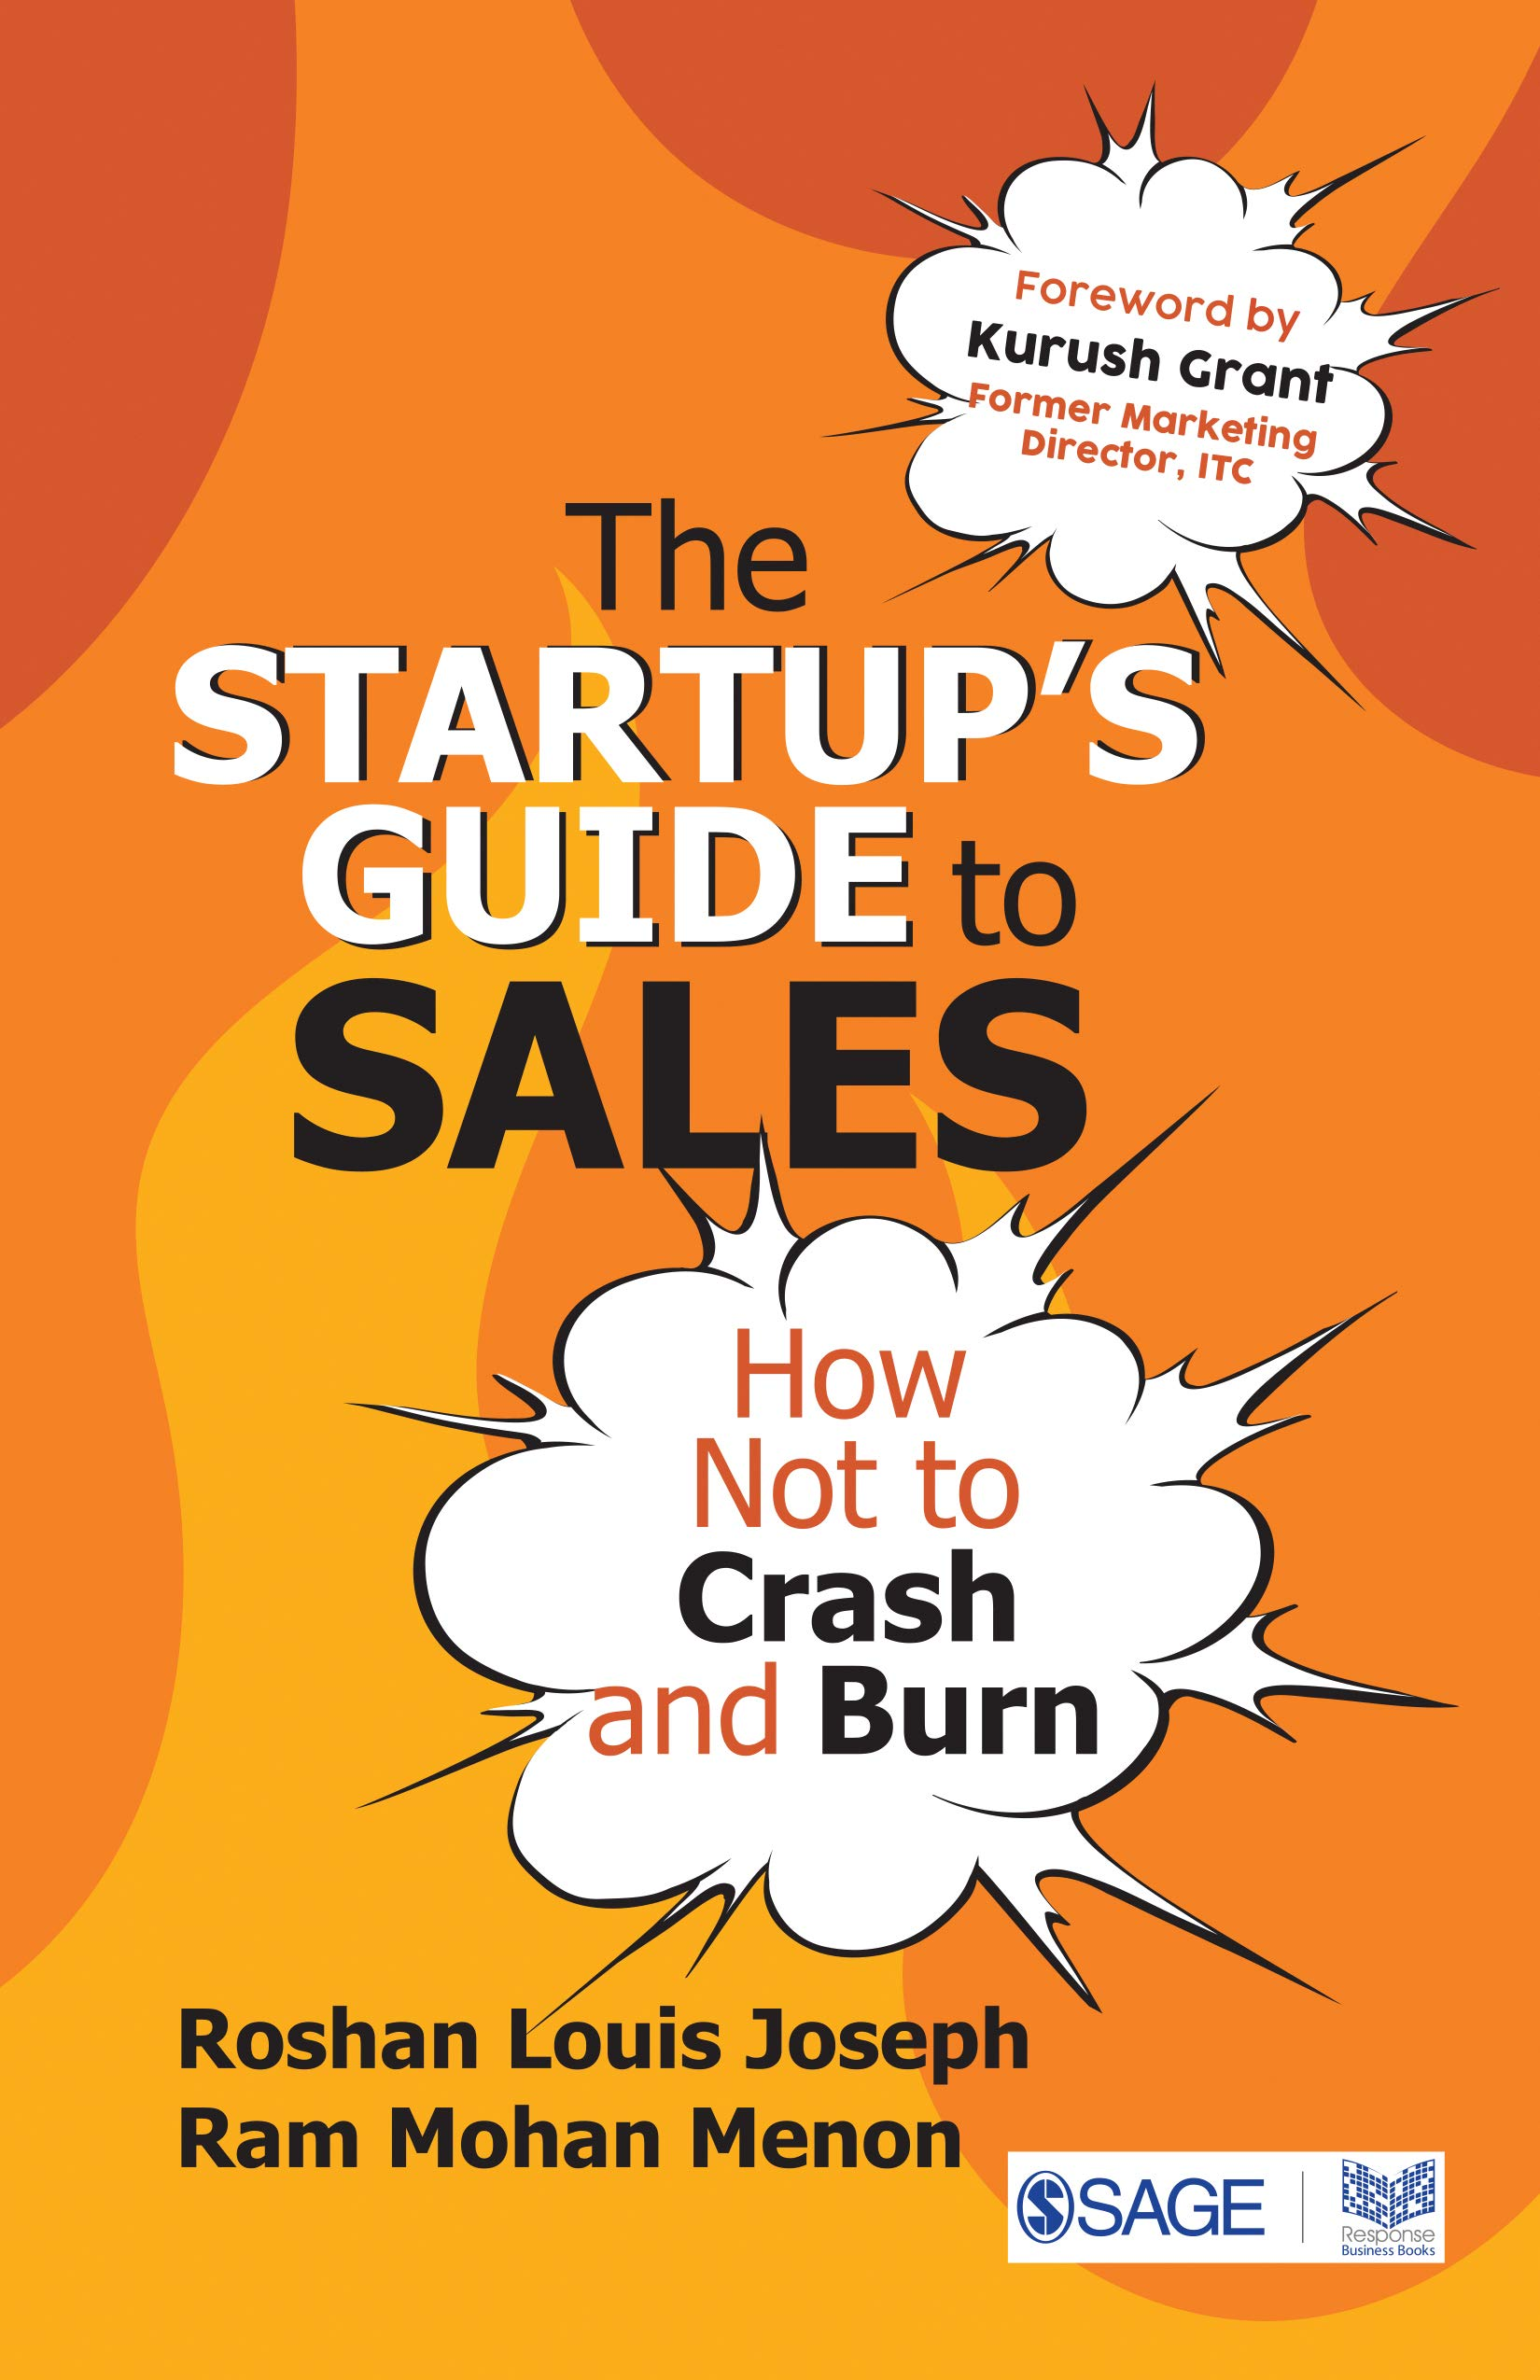 The Startup's guide to Sales